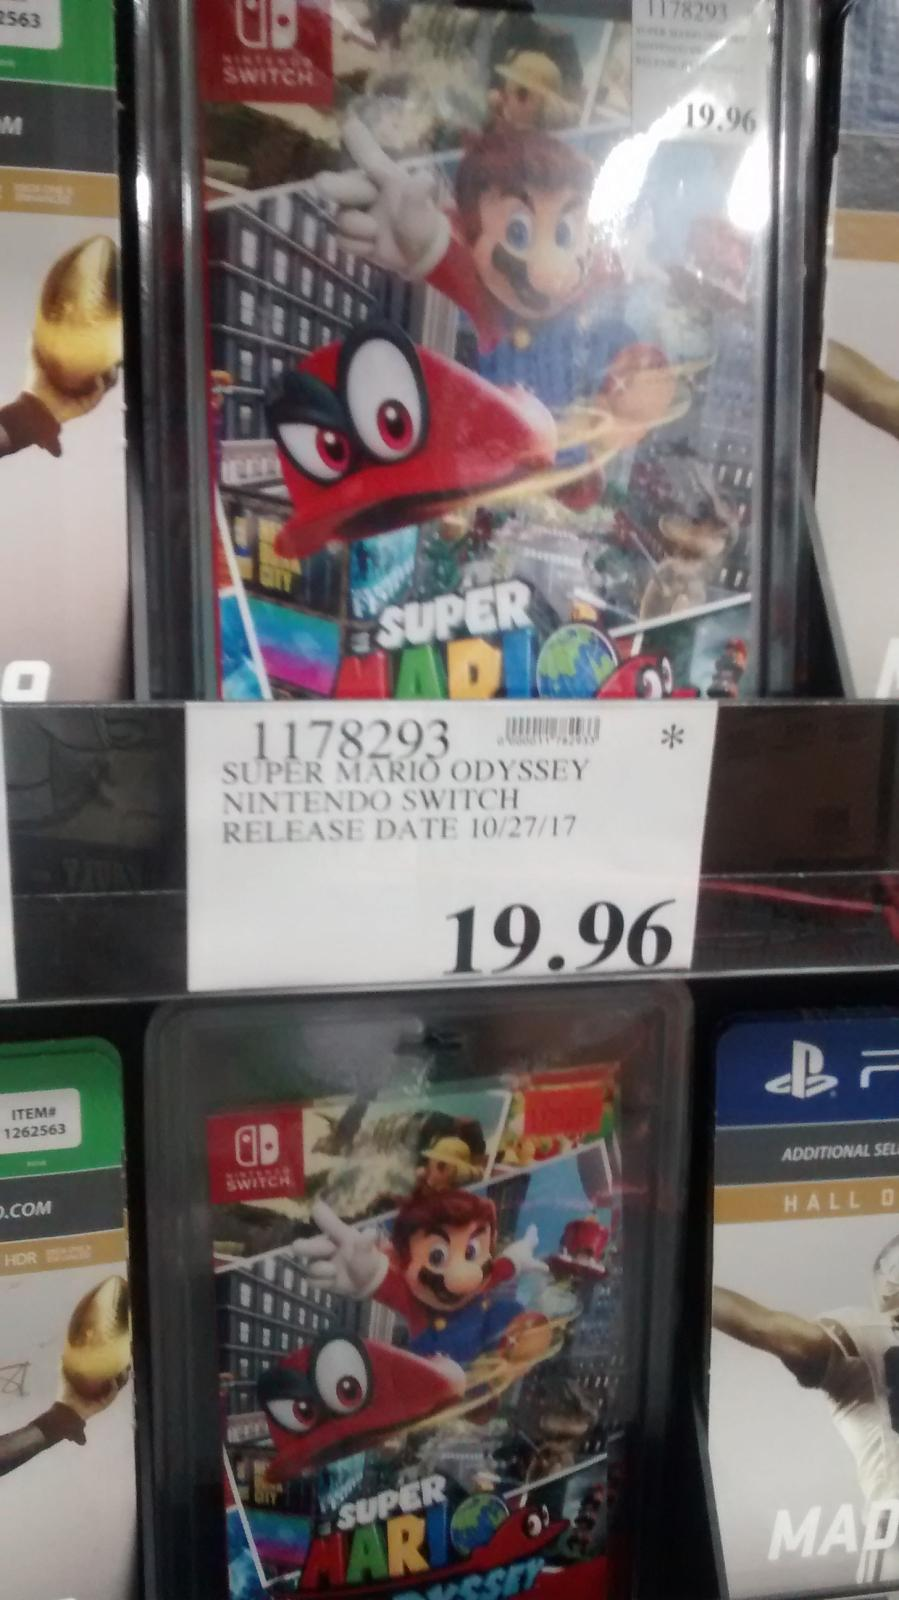 Super Mario Odyssey 19 96 Costco Ymmv Video Game Deals Cheap Ass Gamer These are all found within the nintendo. super mario odyssey 19 96 costco ymmv